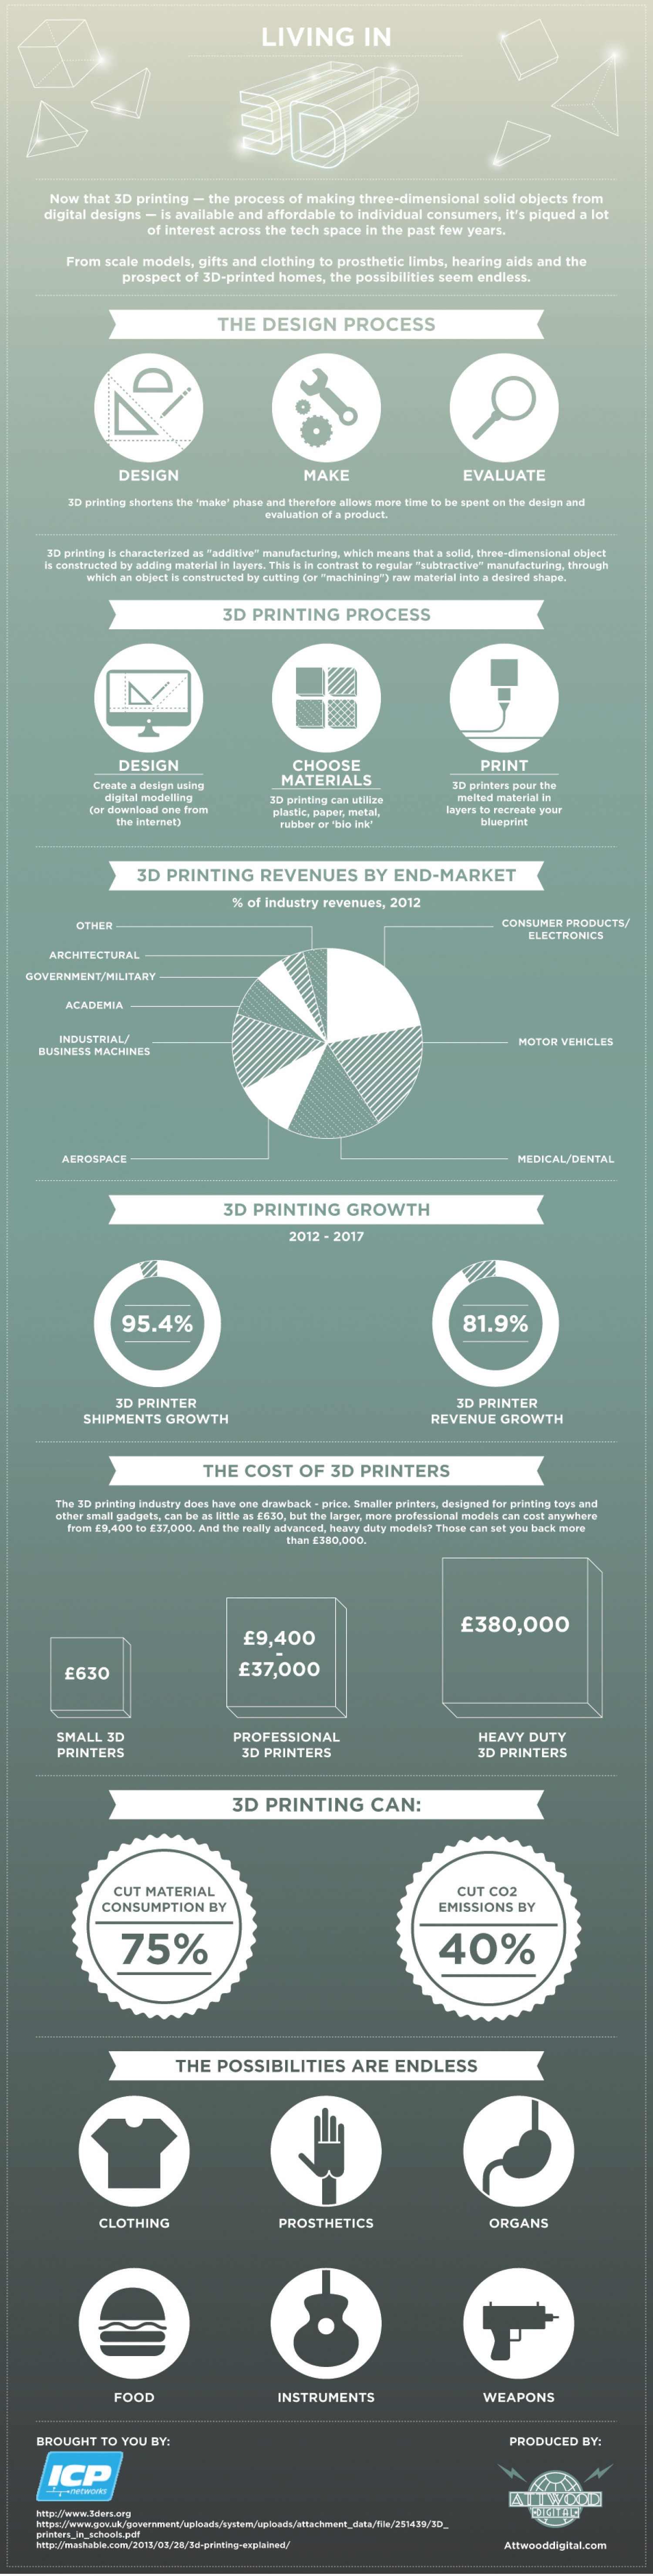 Living in 3D Infographic